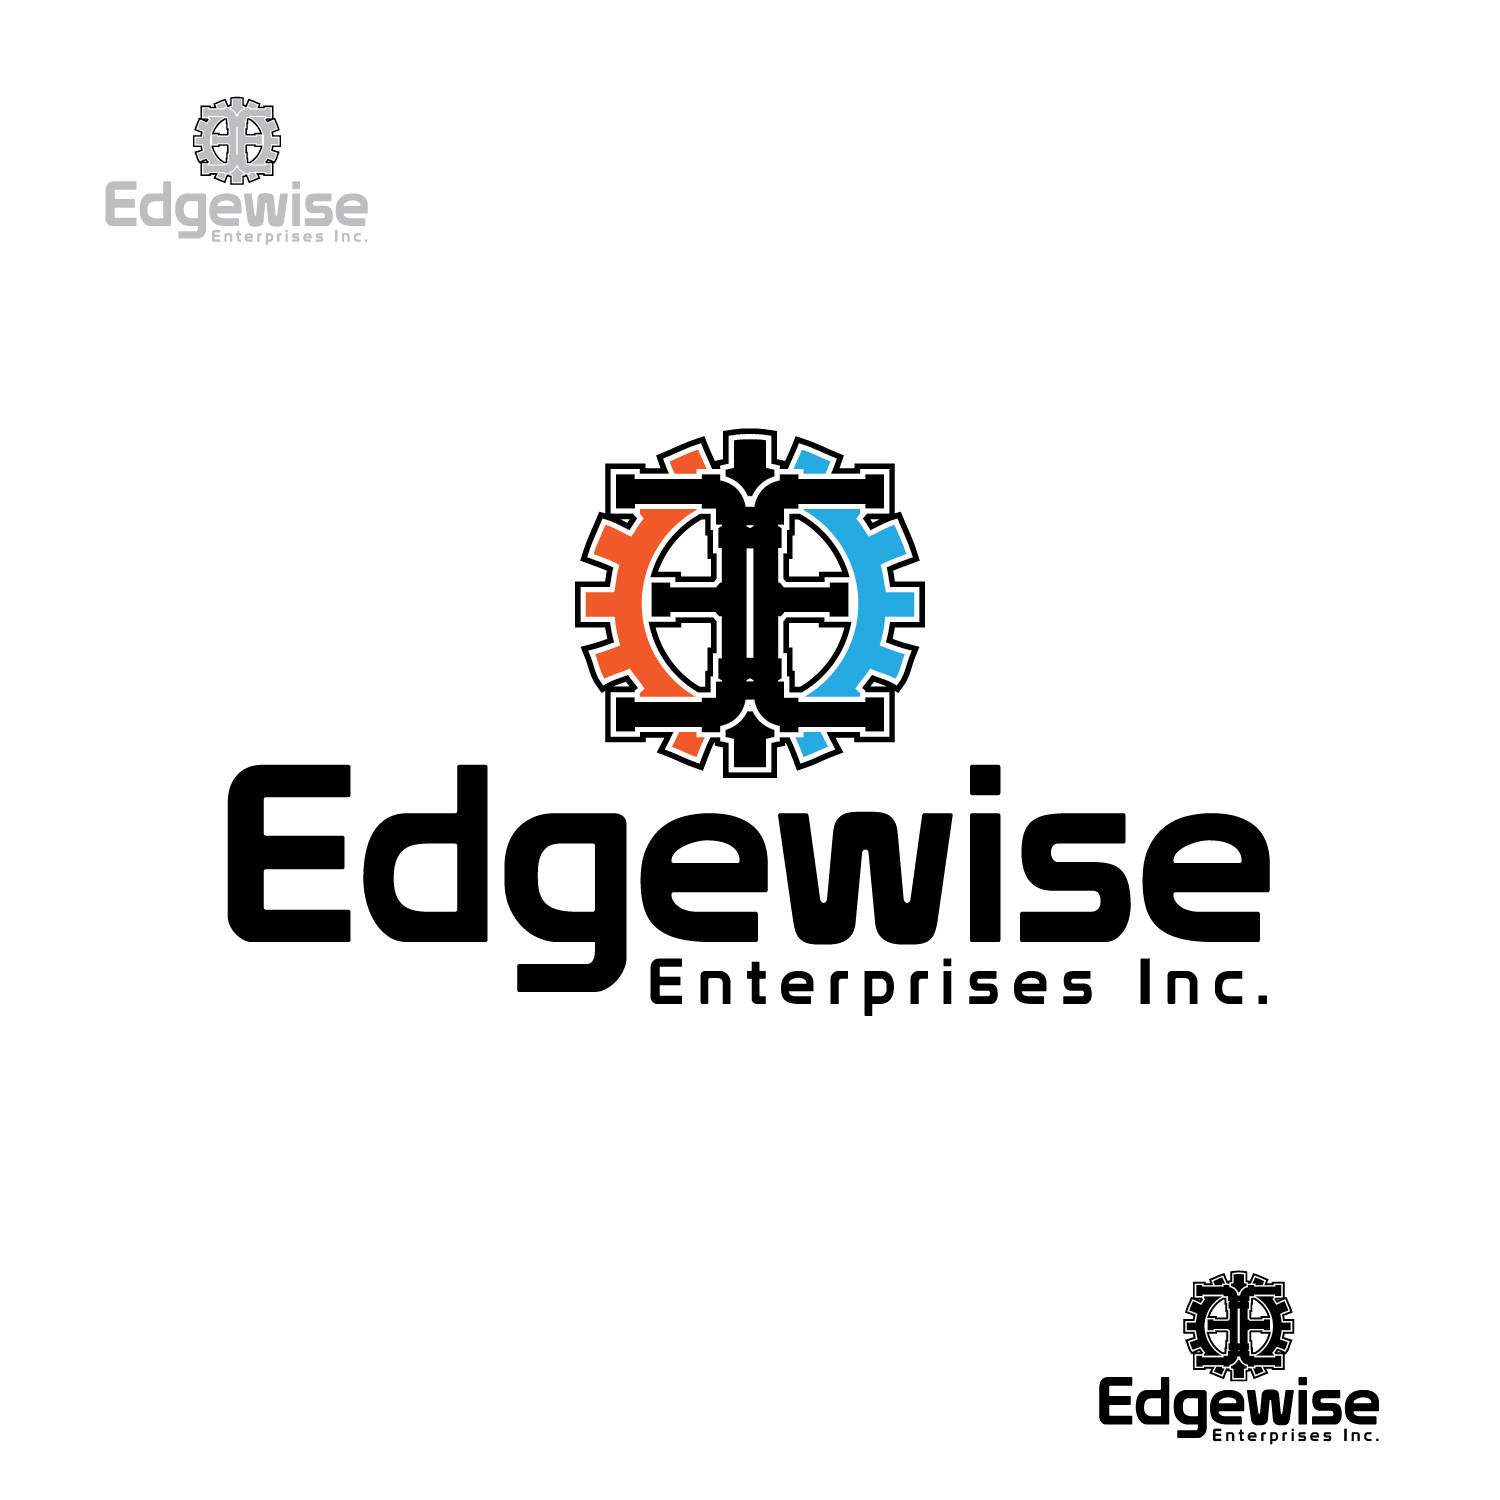 Logo Design by lagalag - Entry No. 48 in the Logo Design Contest New Logo Design for Edgewise Enterprises Inc..